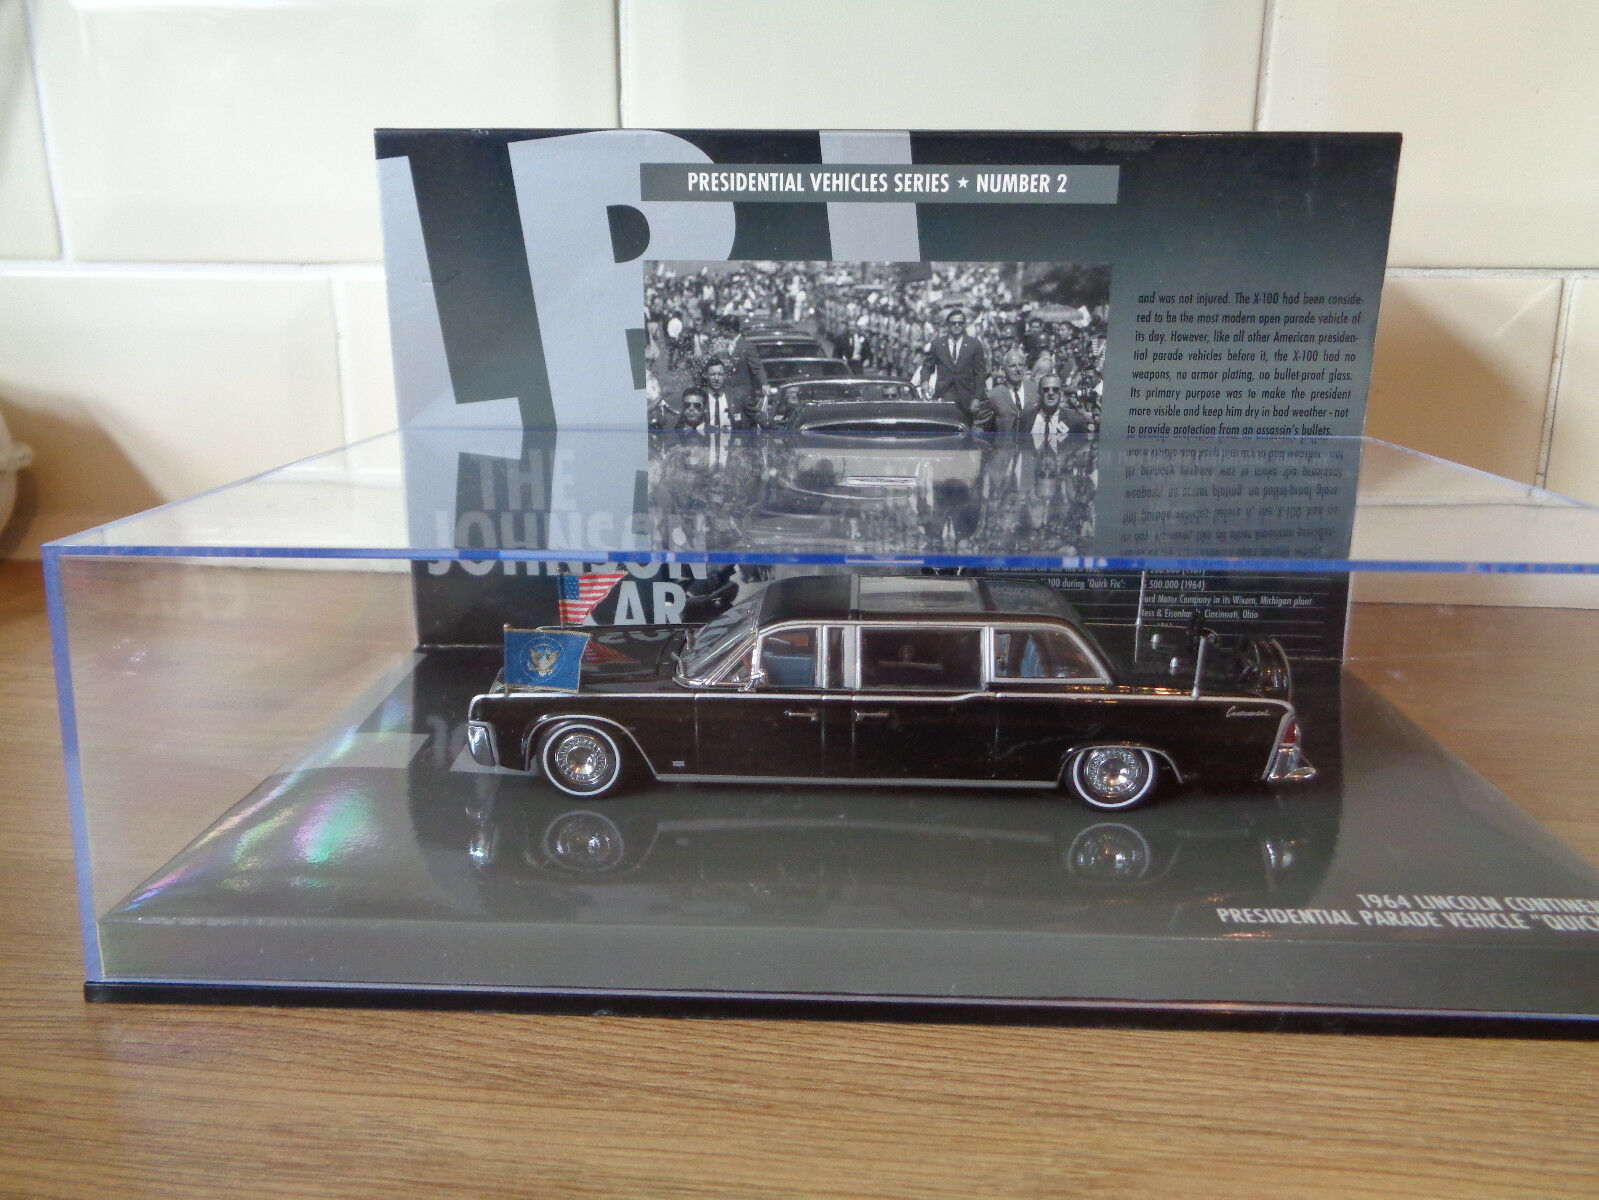 Minichamps 1964 Lincoln Continental Johnson Presidential Parade Car 1 43 scale